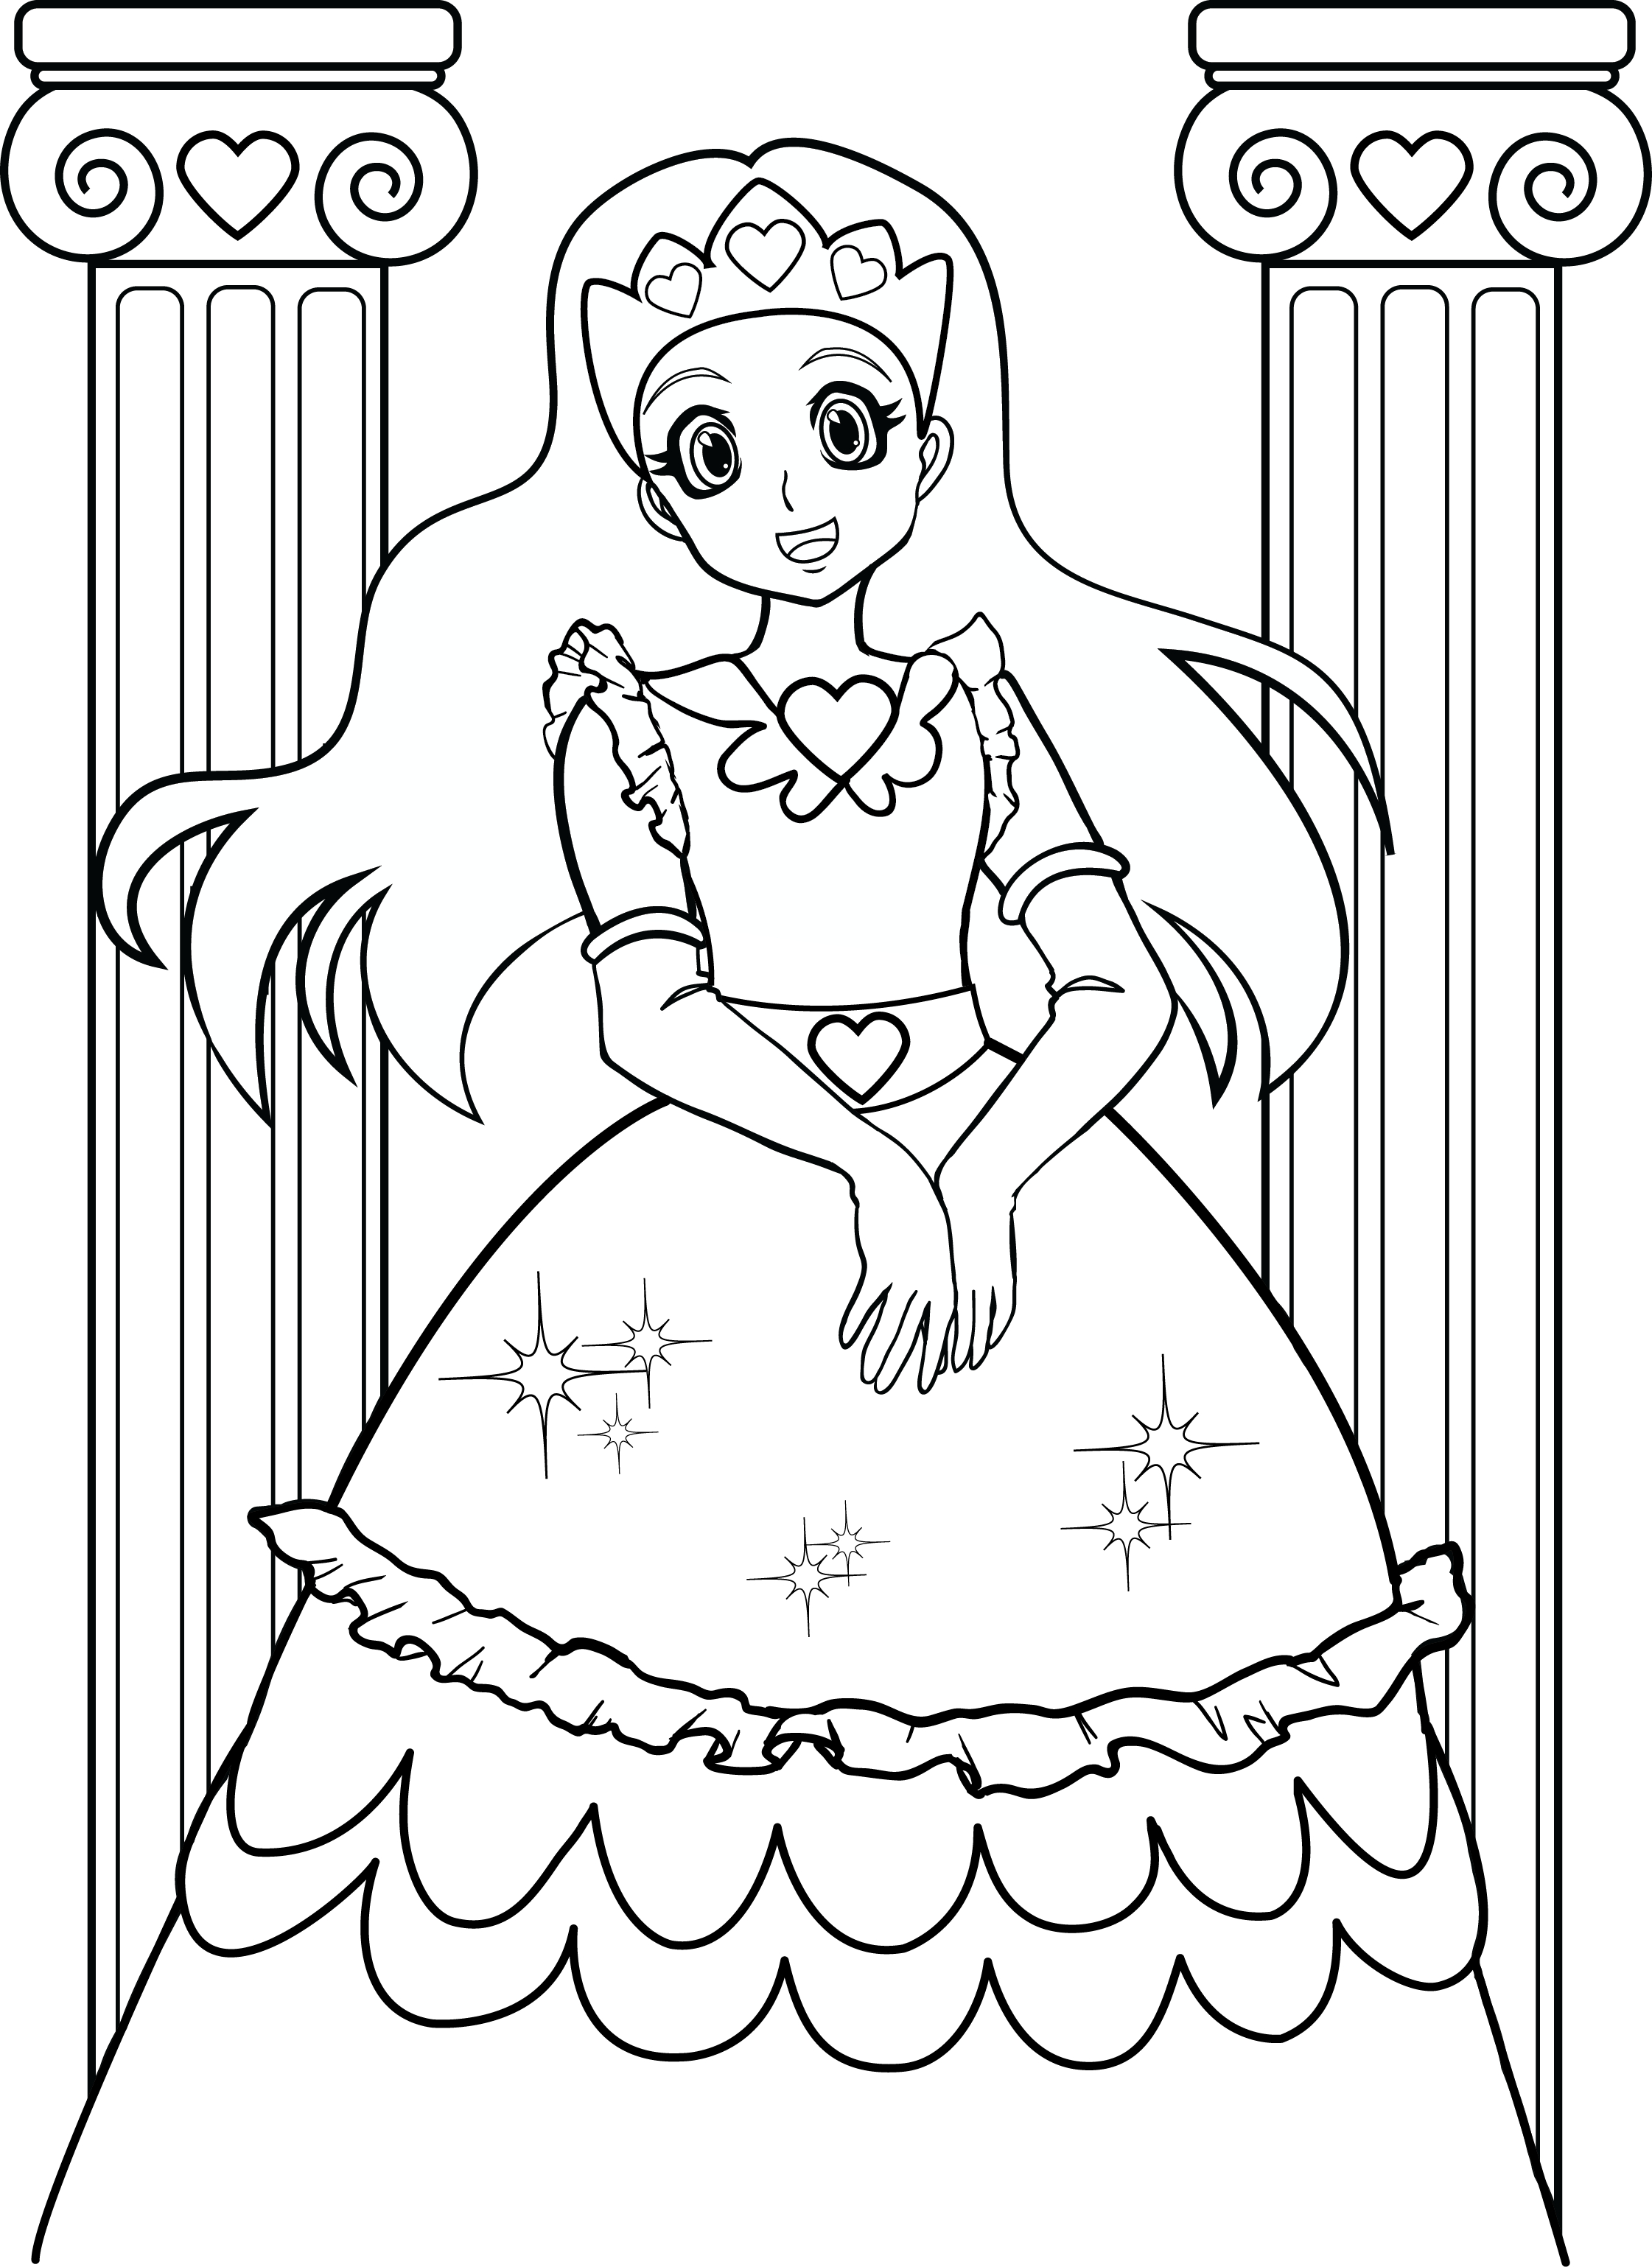 Winning Coloring Pages Line for Girls Coloring to Funny Girls Gallery Of 13 Kid Coloring Pages Line Gallery